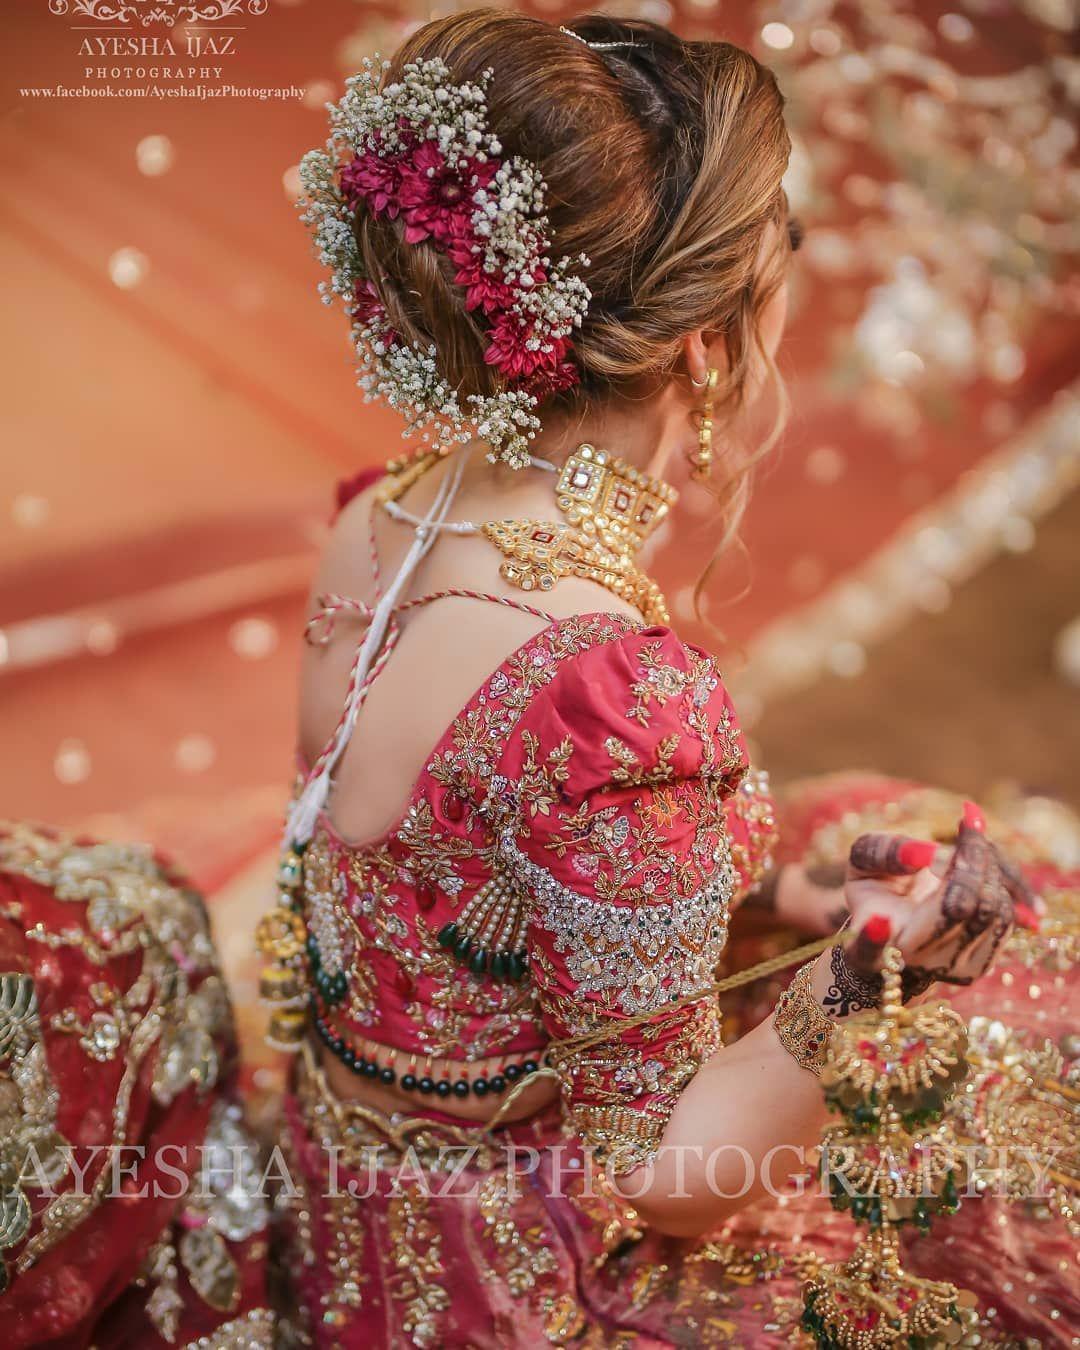 Image May Contain One Or More People Wedding Dresses For Girls